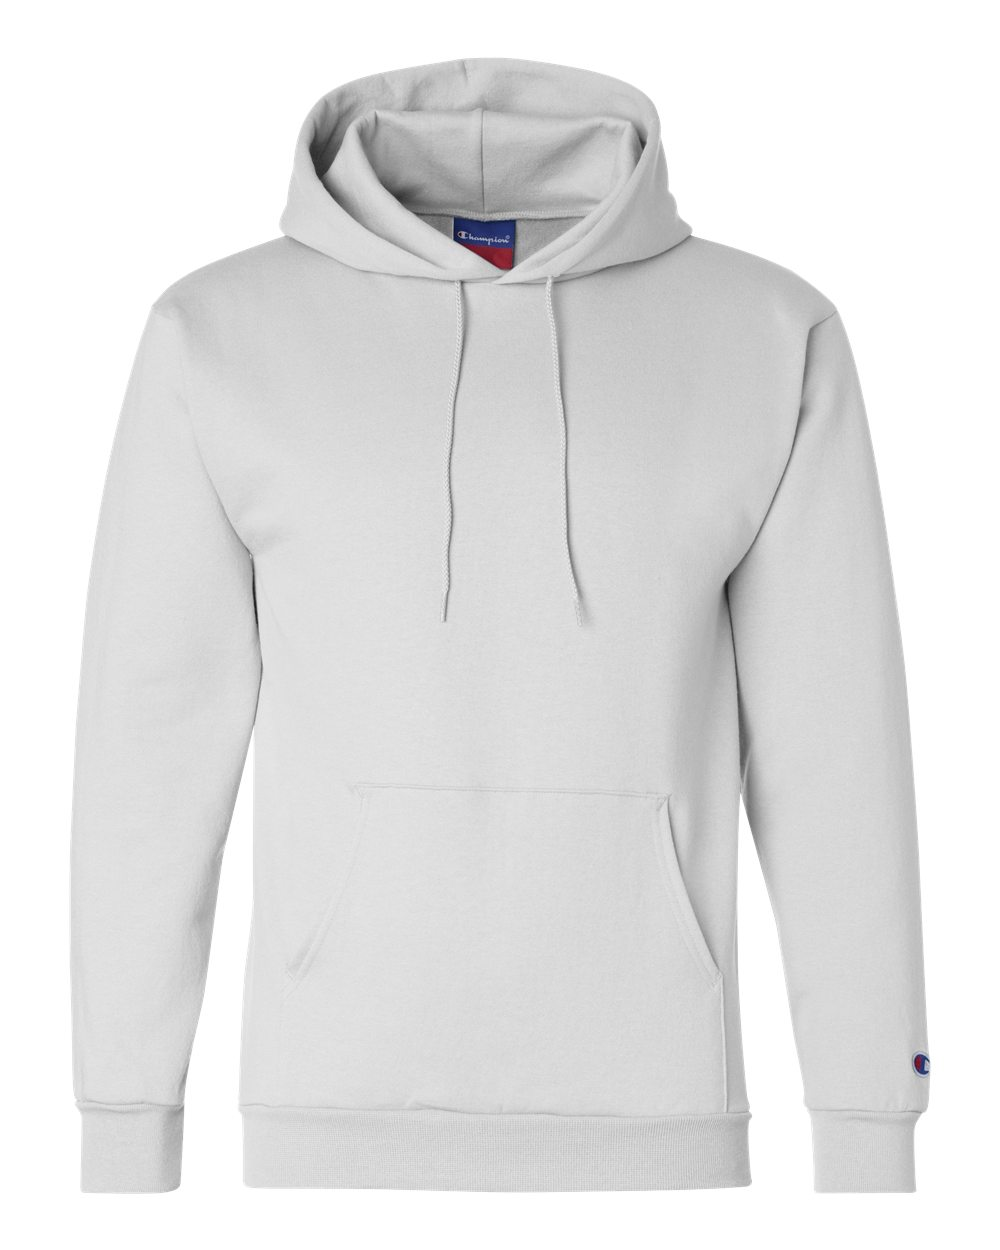 Champion-Mens-Double-Dry-Eco-Hooded-Sweatshirt-Hoodie-Pullover-S700-up-to-3XL miniature 45